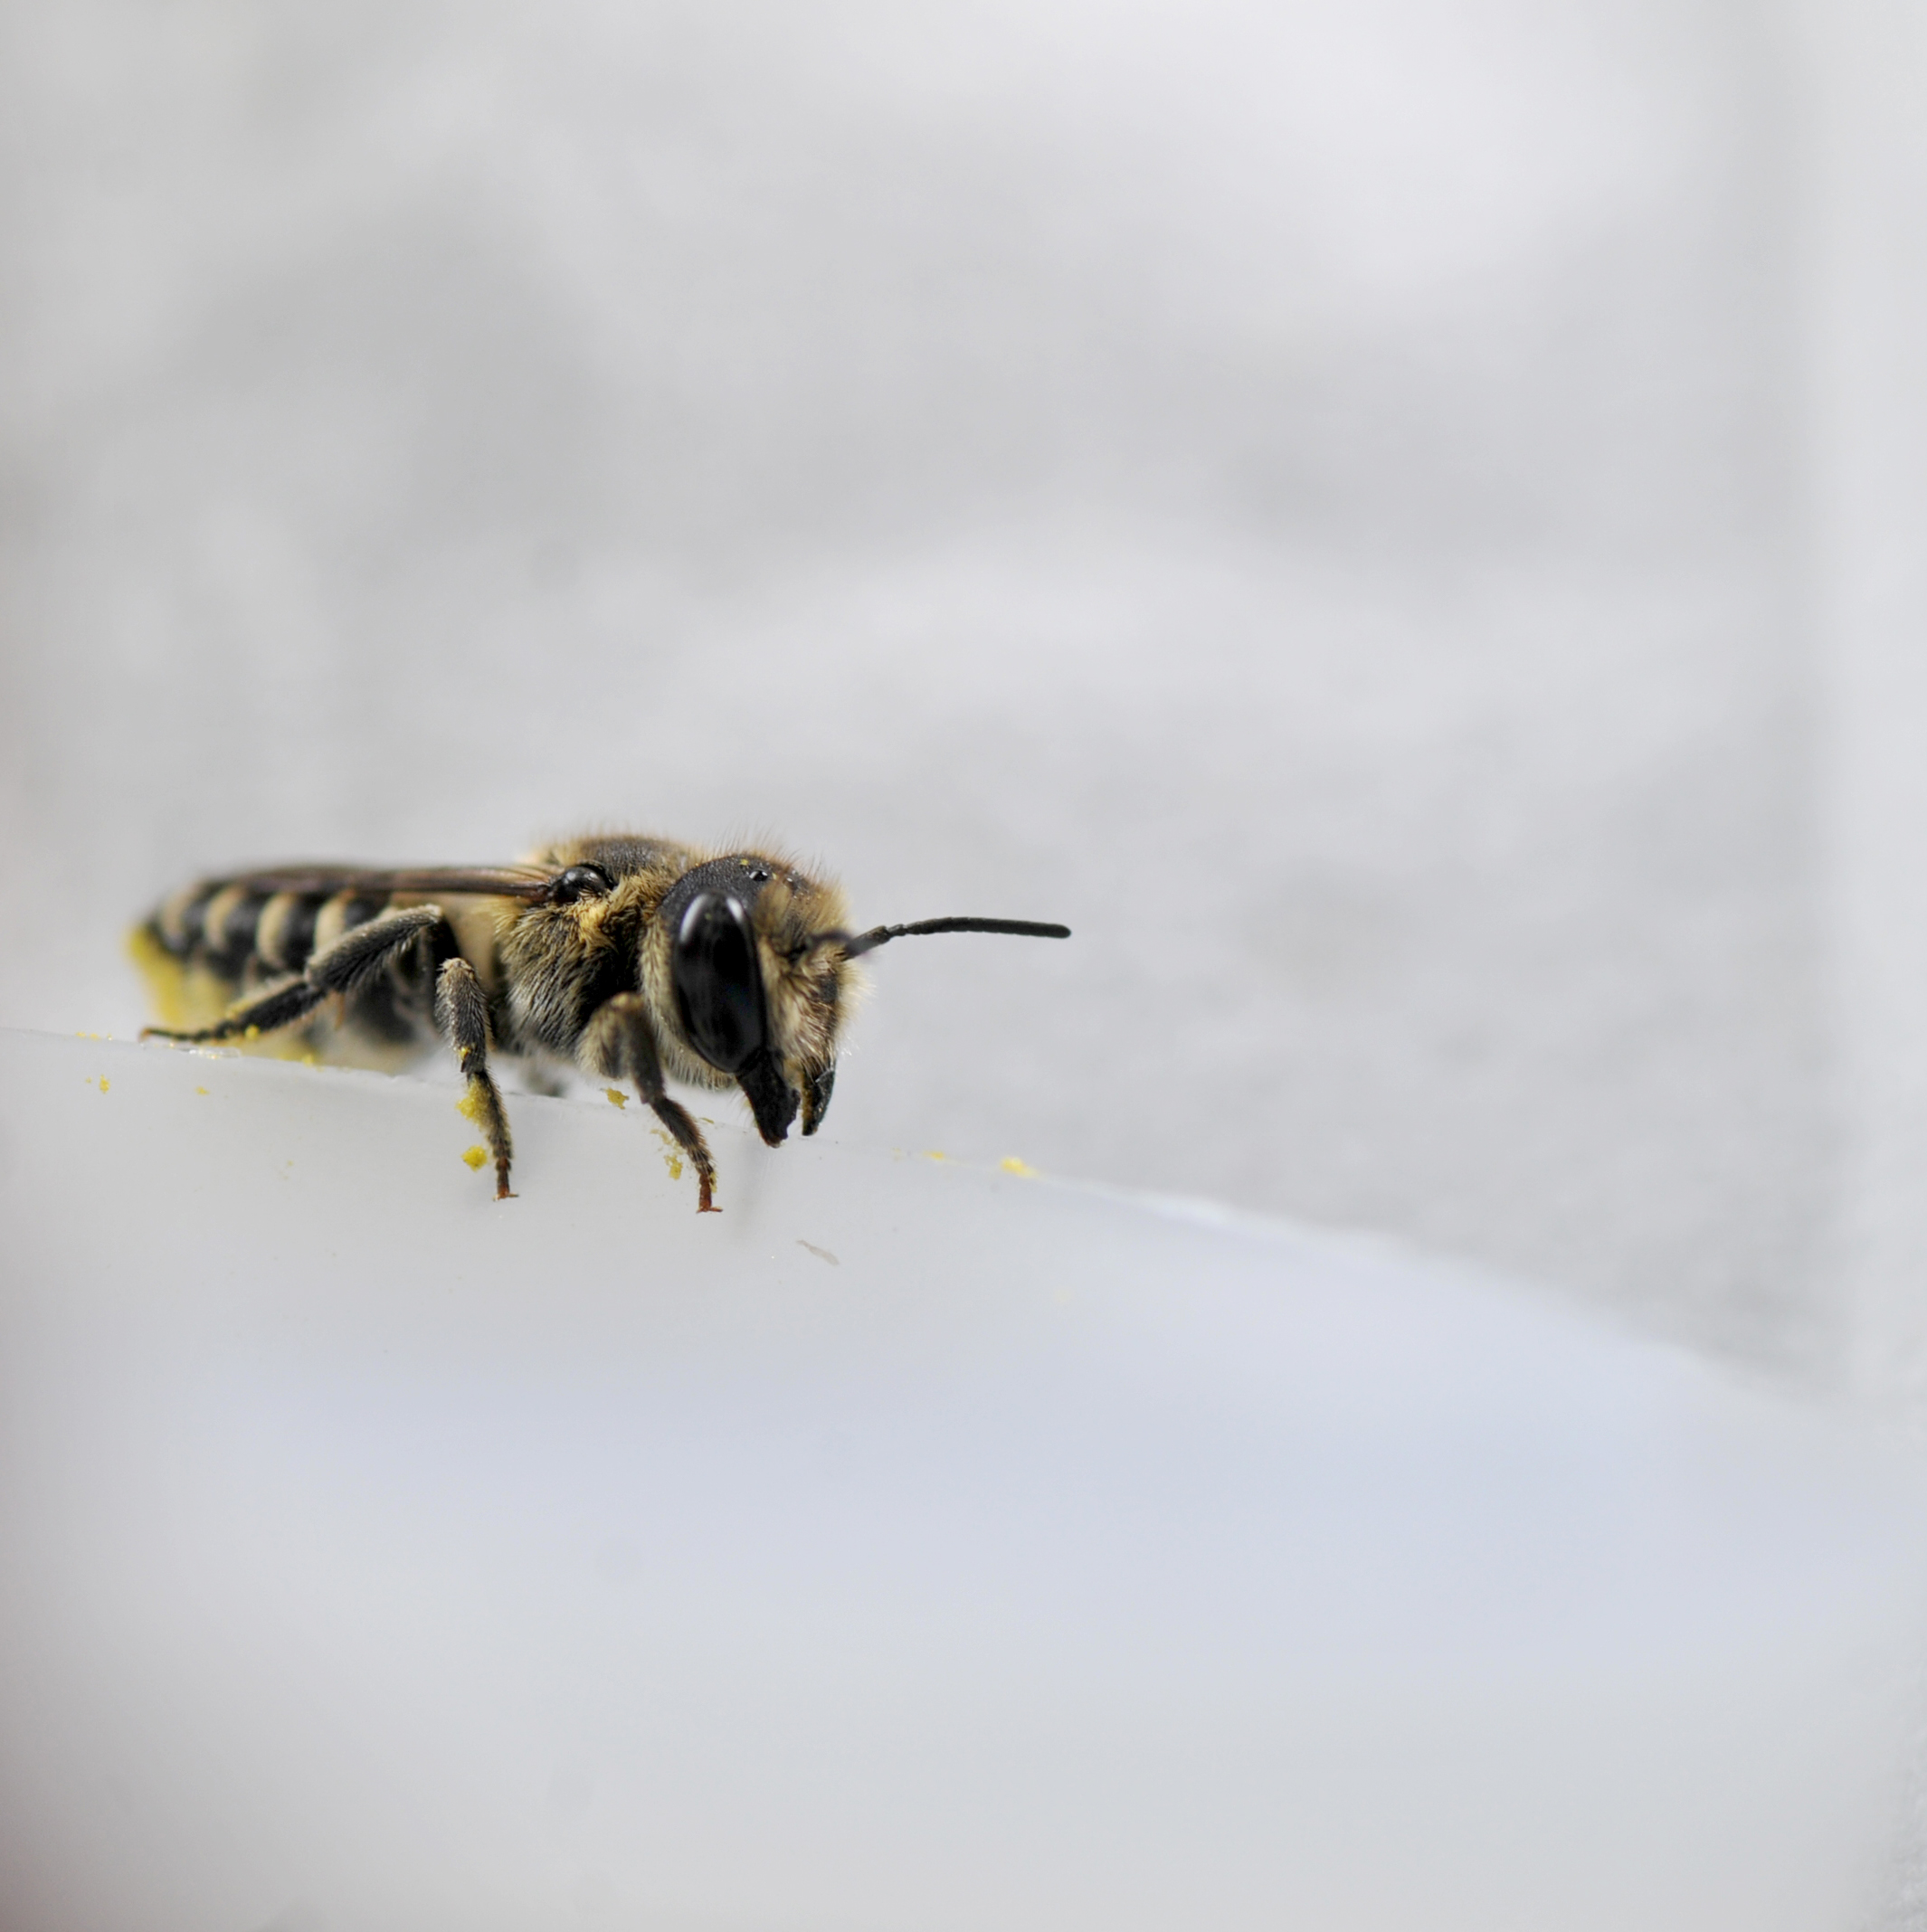 Leafcutter bee (f - look for scopa [hairs on underside of abdomen]